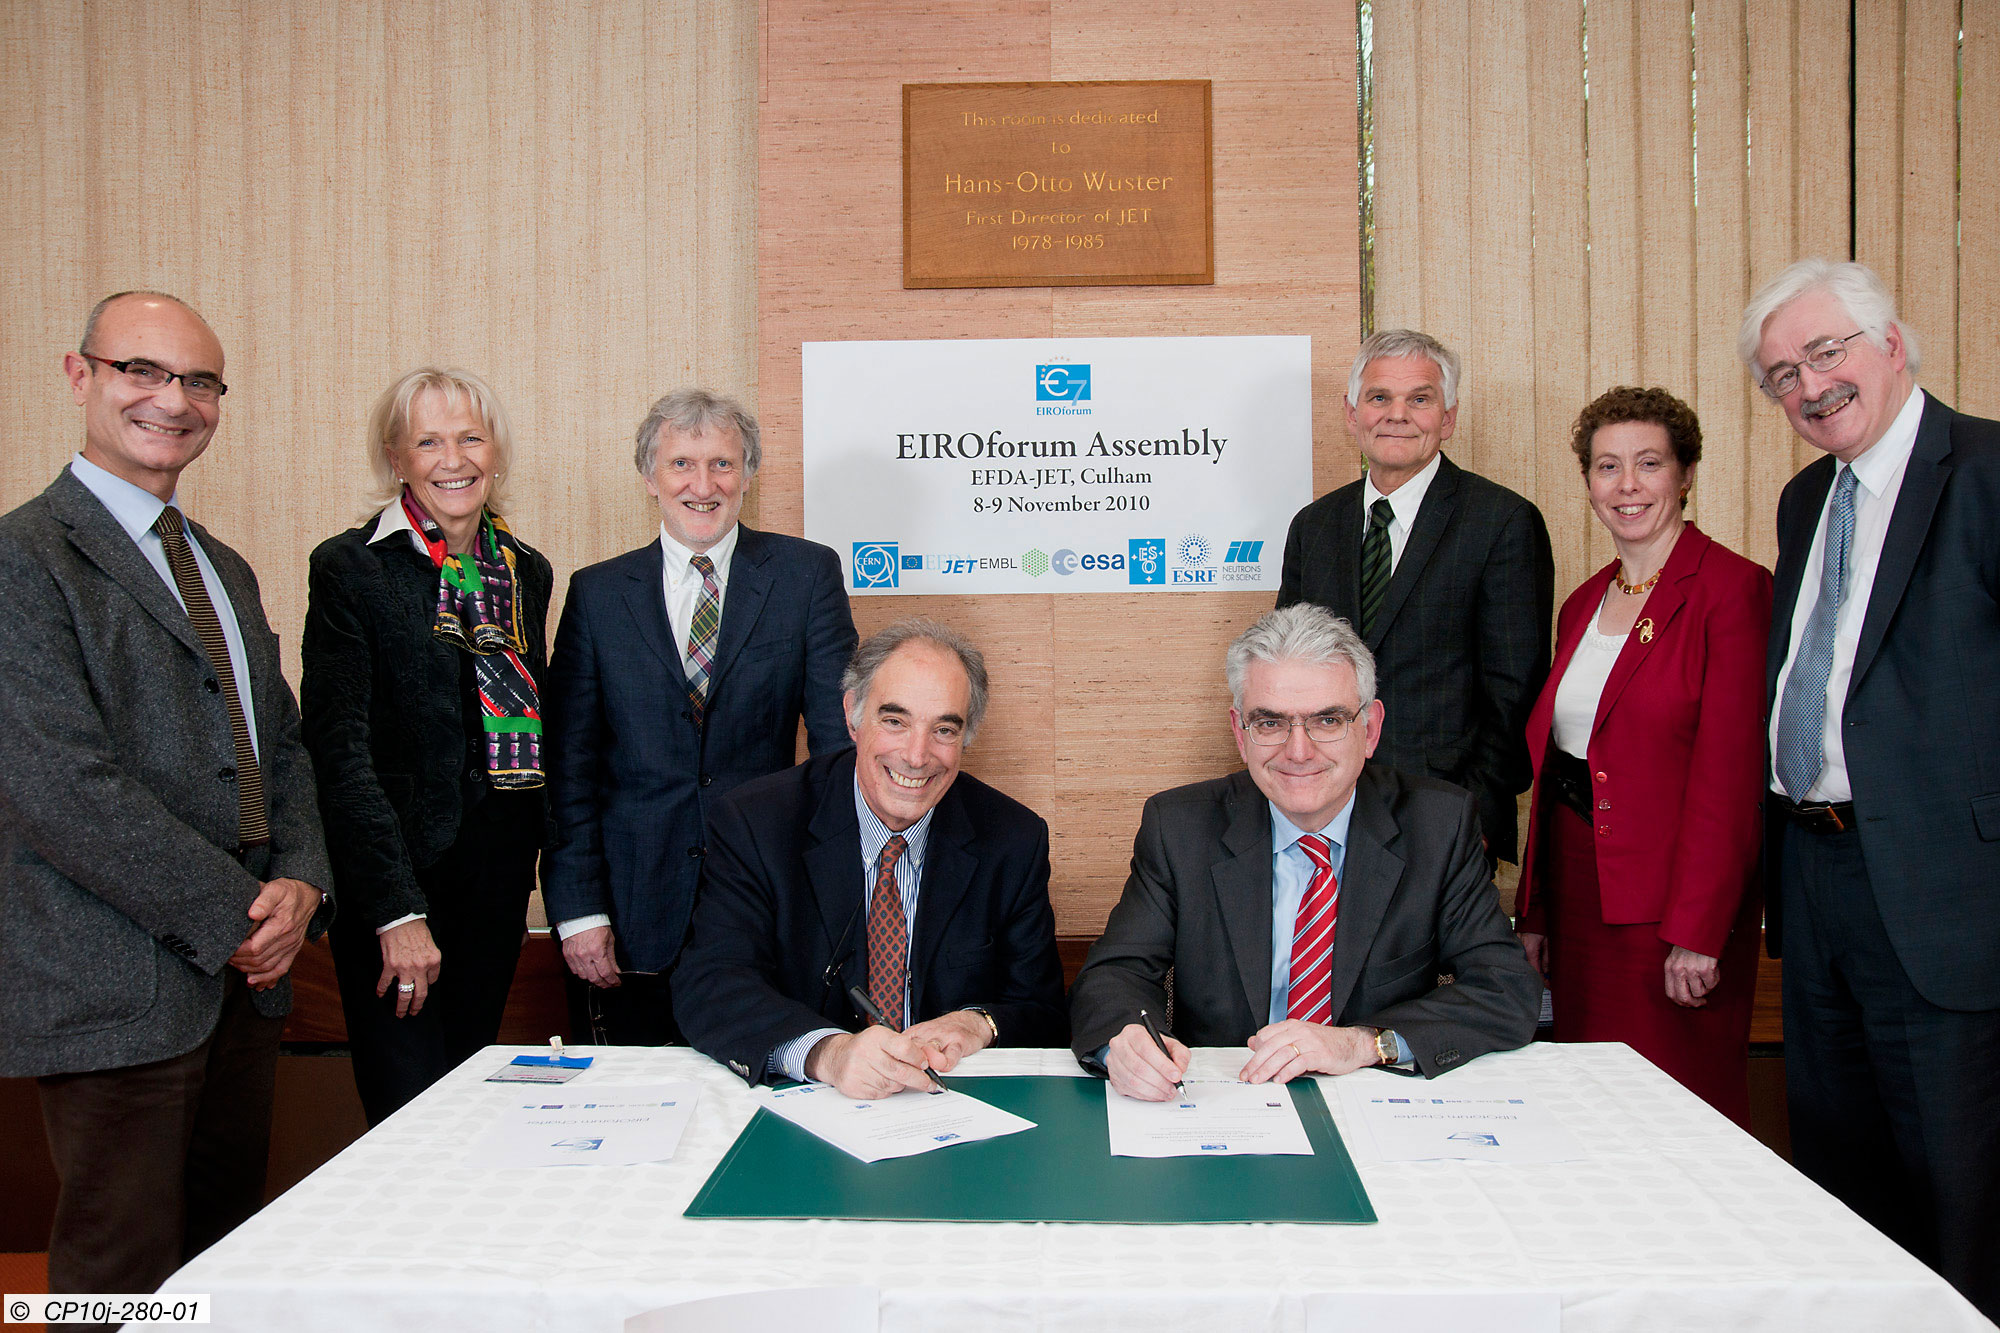 Signing the declaration of accession to the EIROforum: Massimo Altarelli, Chairman of the XFEL Management Board (left) and Francesco Romanelli, Chairman of the EIROforum (right). In the back (left to right): Francesco Sette (ESRF), Felicitas Pauss (CERN), Iain Mattaj (EMBL), Richard Wagner (ILL), Rowena Sirey (ESO) and David Southwood (ESA)